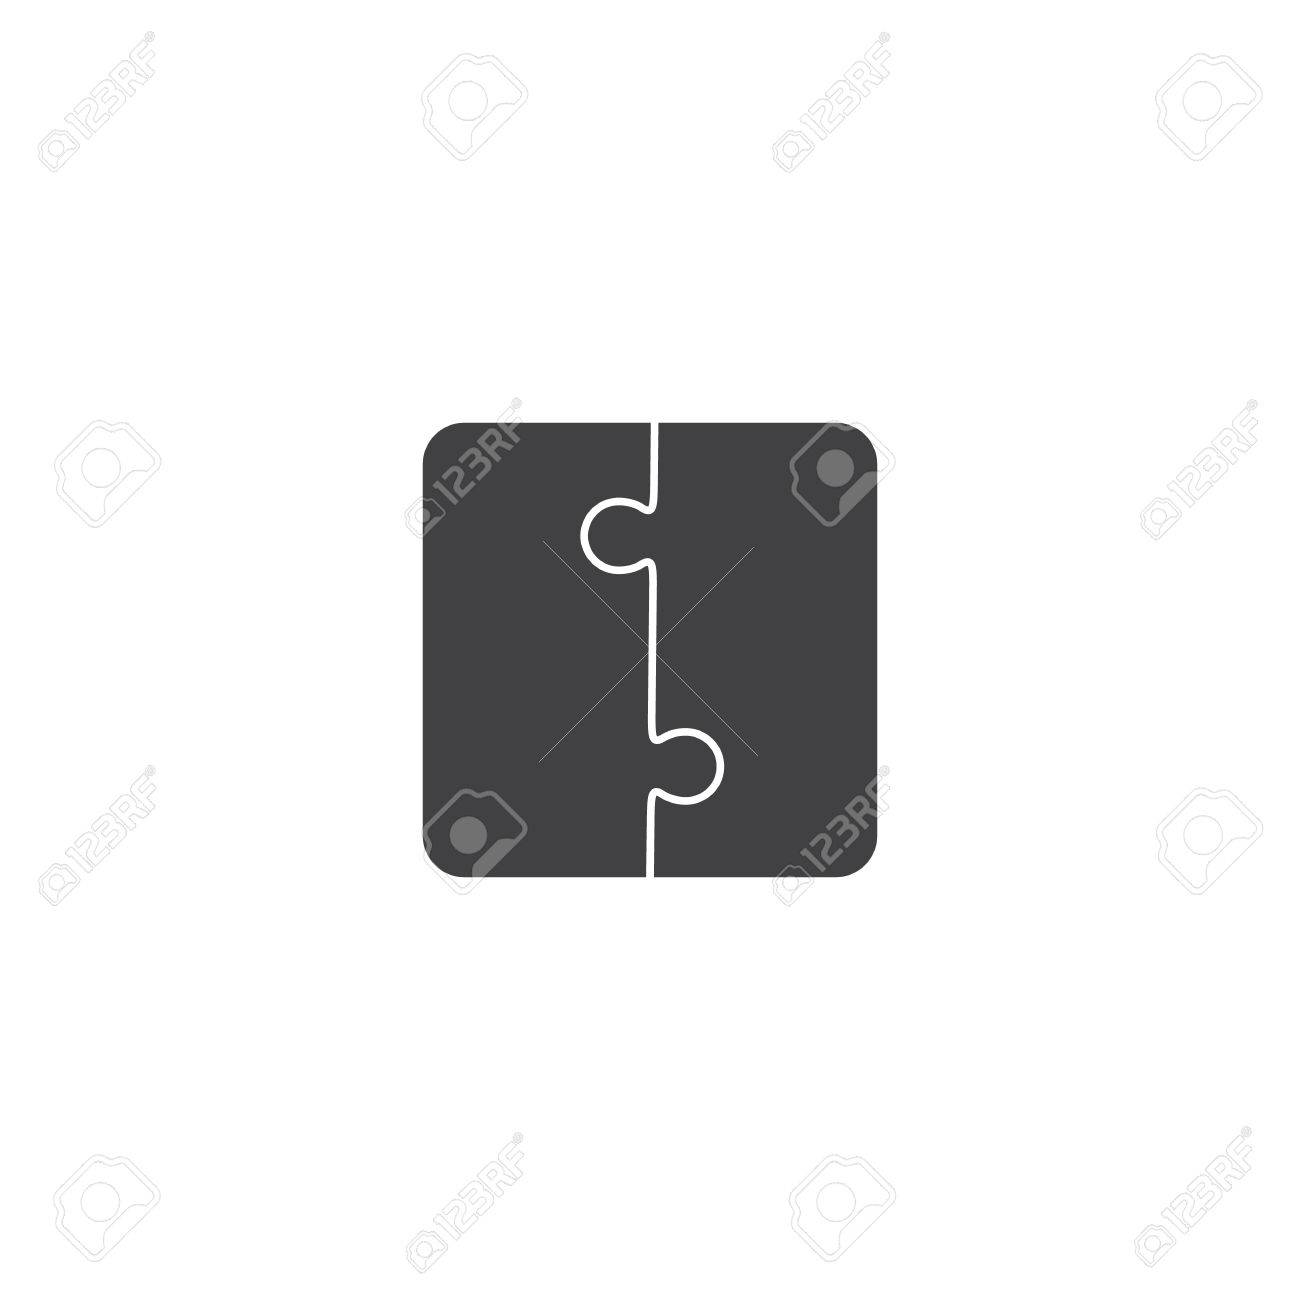 Jigsaw Puzzle Vector, Blank Simple Template Pieces Royalty Free ...